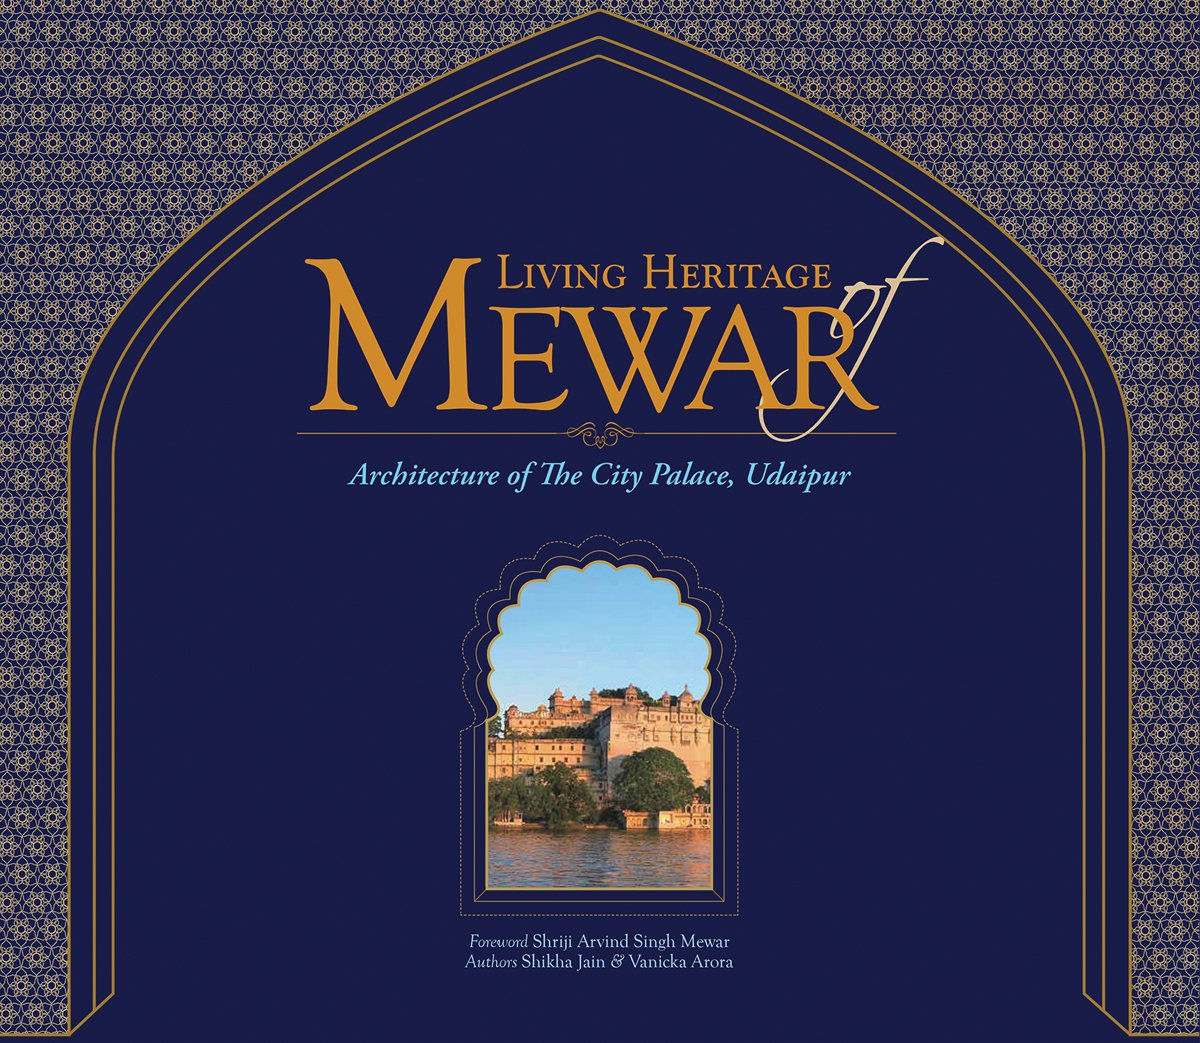 Living Heritage of Mewar: Architecture of the City Palace, Udaipur by Mapin Publishing Gp Pty Ltd (Image #1)